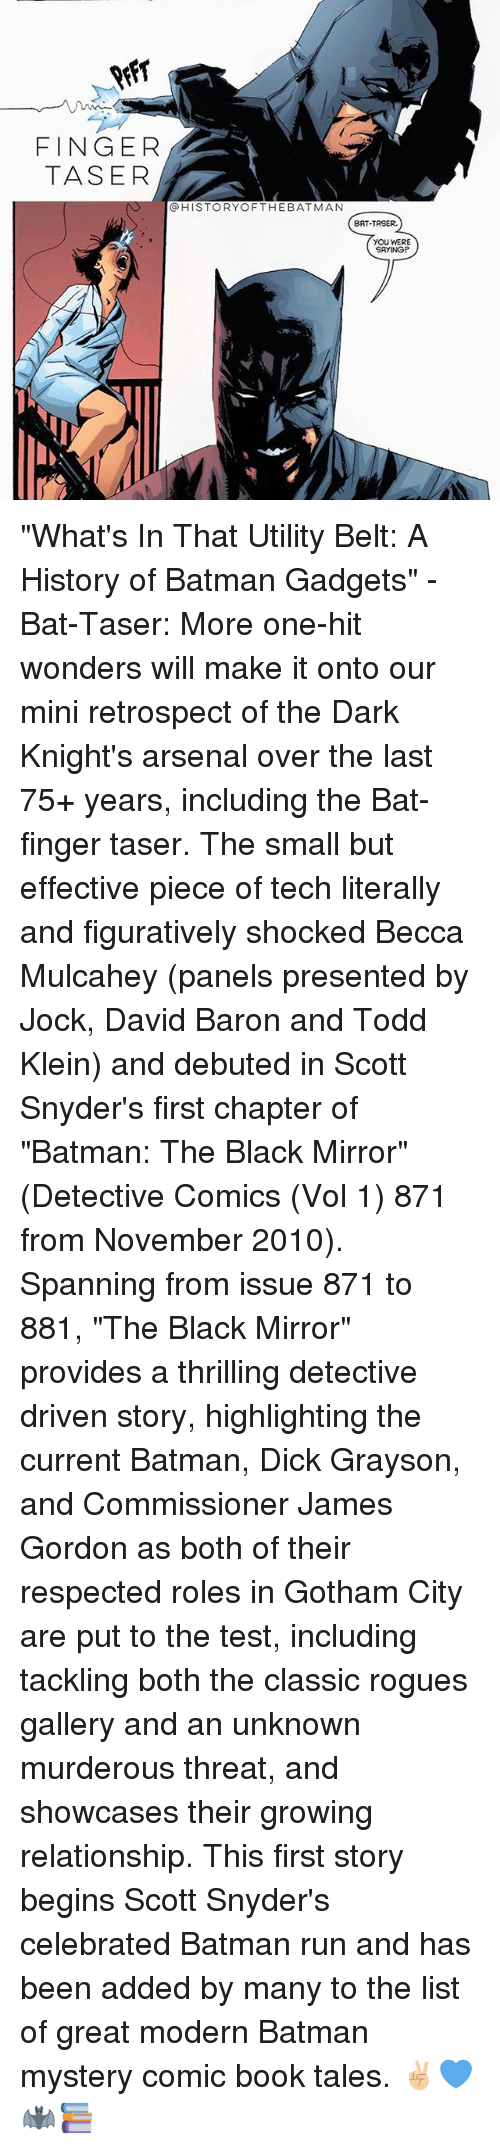 """Teching: FINGER  TASER  @HISTORYOFTHEBATMAN  BAT-TASER.  YOU WERE  SAYING """"What's In That Utility Belt: A History of Batman Gadgets"""" - Bat-Taser: More one-hit wonders will make it onto our mini retrospect of the Dark Knight's arsenal over the last 75+ years, including the Bat-finger taser. The small but effective piece of tech literally and figuratively shocked Becca Mulcahey (panels presented by Jock, David Baron and Todd Klein) and debuted in Scott Snyder's first chapter of """"Batman: The Black Mirror"""" (Detective Comics (Vol 1) 871 from November 2010). Spanning from issue 871 to 881, """"The Black Mirror"""" provides a thrilling detective driven story, highlighting the current Batman, Dick Grayson, and Commissioner James Gordon as both of their respected roles in Gotham City are put to the test, including tackling both the classic rogues gallery and an unknown murderous threat, and showcases their growing relationship. This first story begins Scott Snyder's celebrated Batman run and has been added by many to the list of great modern Batman mystery comic book tales. ✌🏼💙🦇📚"""